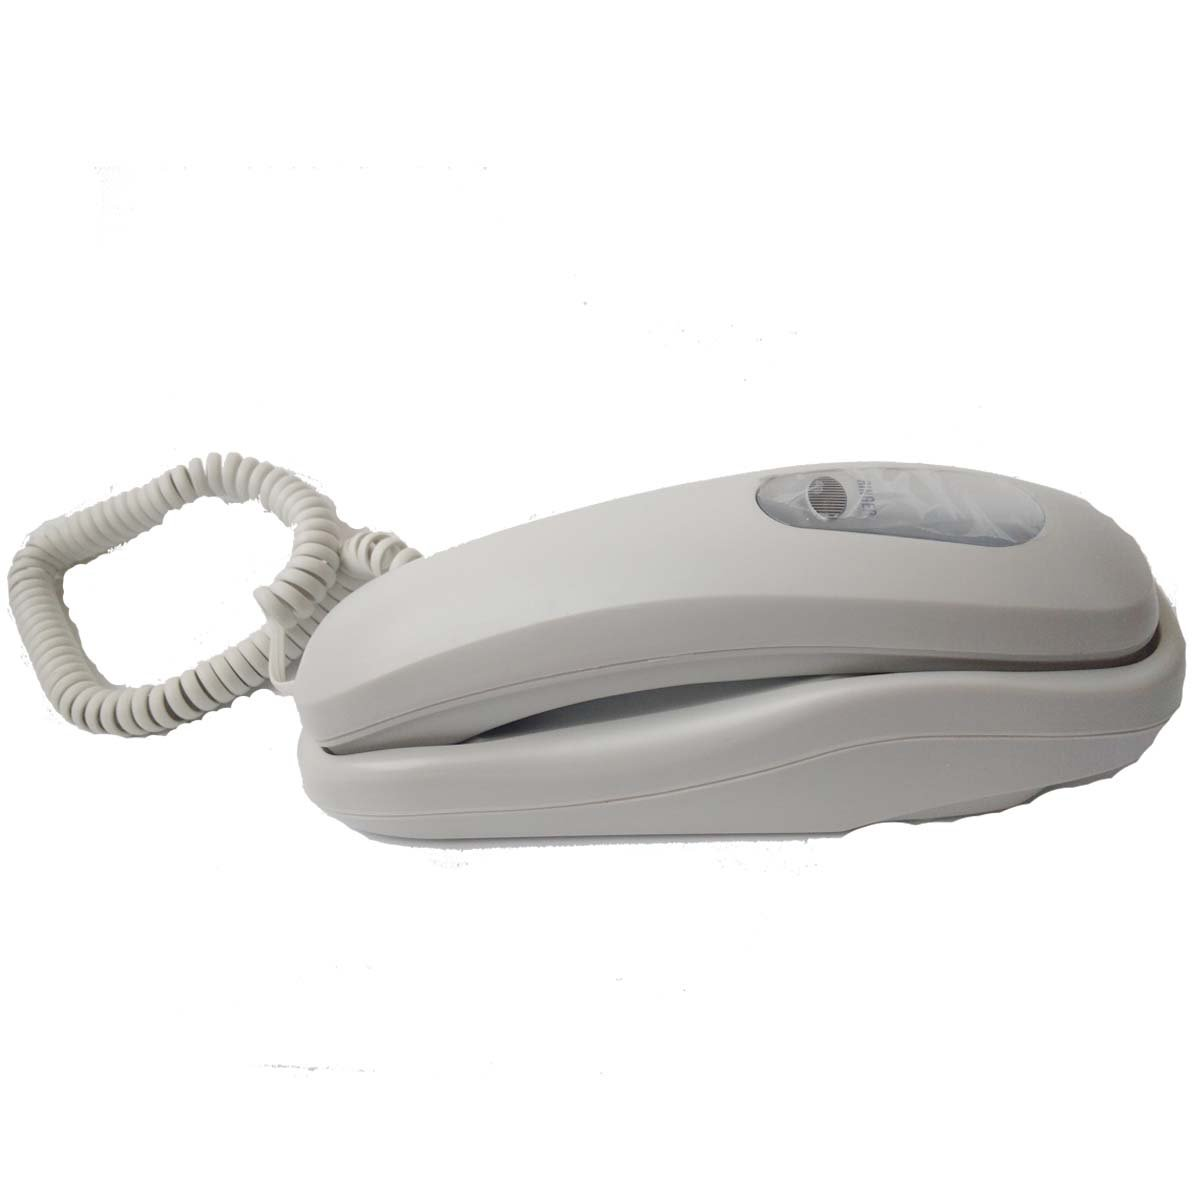 HePesTer P-012 Trimline Corded Phone with Speed Dial Memory Home Office Slimline Telephone Wall Mountable